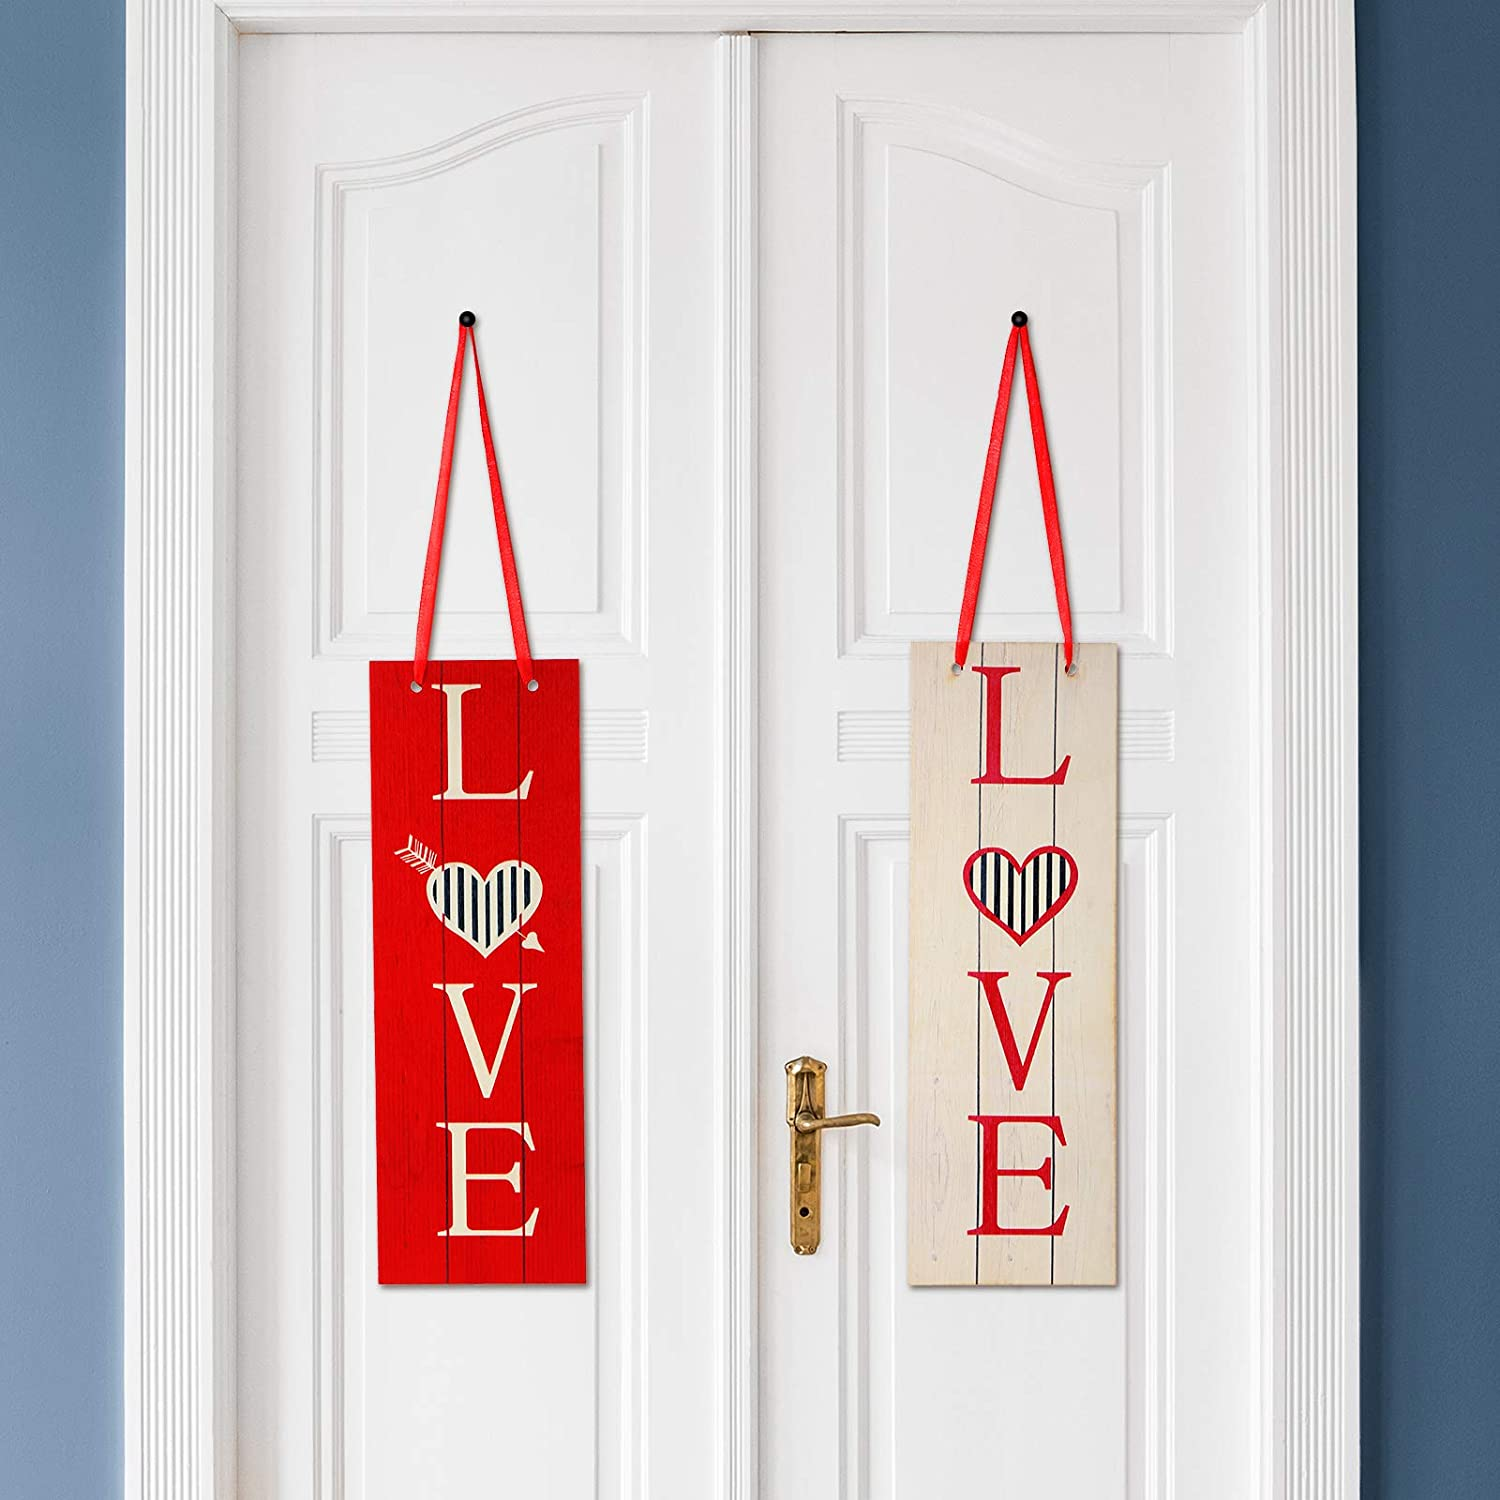 2 Pieces Valentine Sign Love Heart Wooden Sign Vertical Red White Love Letters Door Wall Hanging Sign Plaque for Valentine's Day Wedding Bedroom Living Room Dining Decor, 12 x 6 Inch